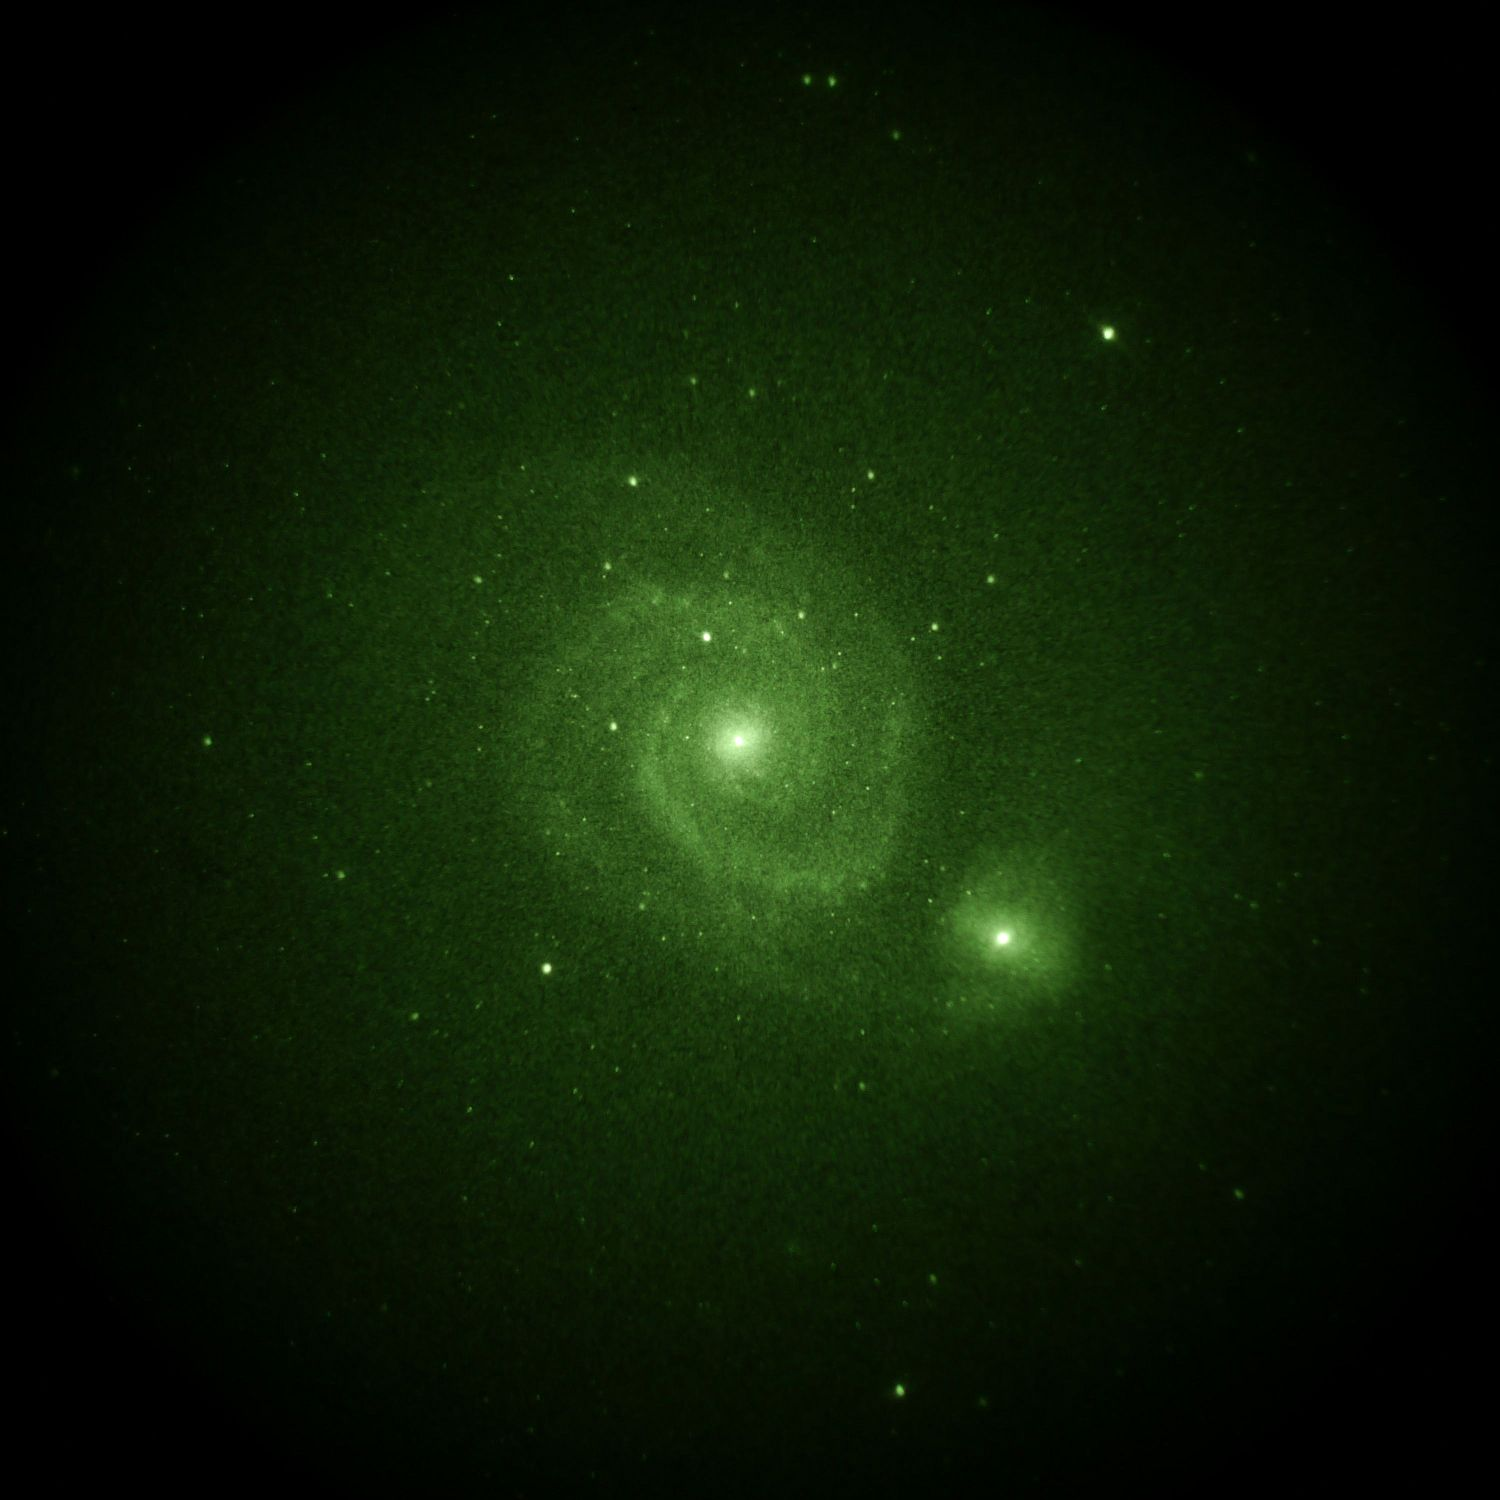 Observing globular clusters with night vision - last post by jdbastro